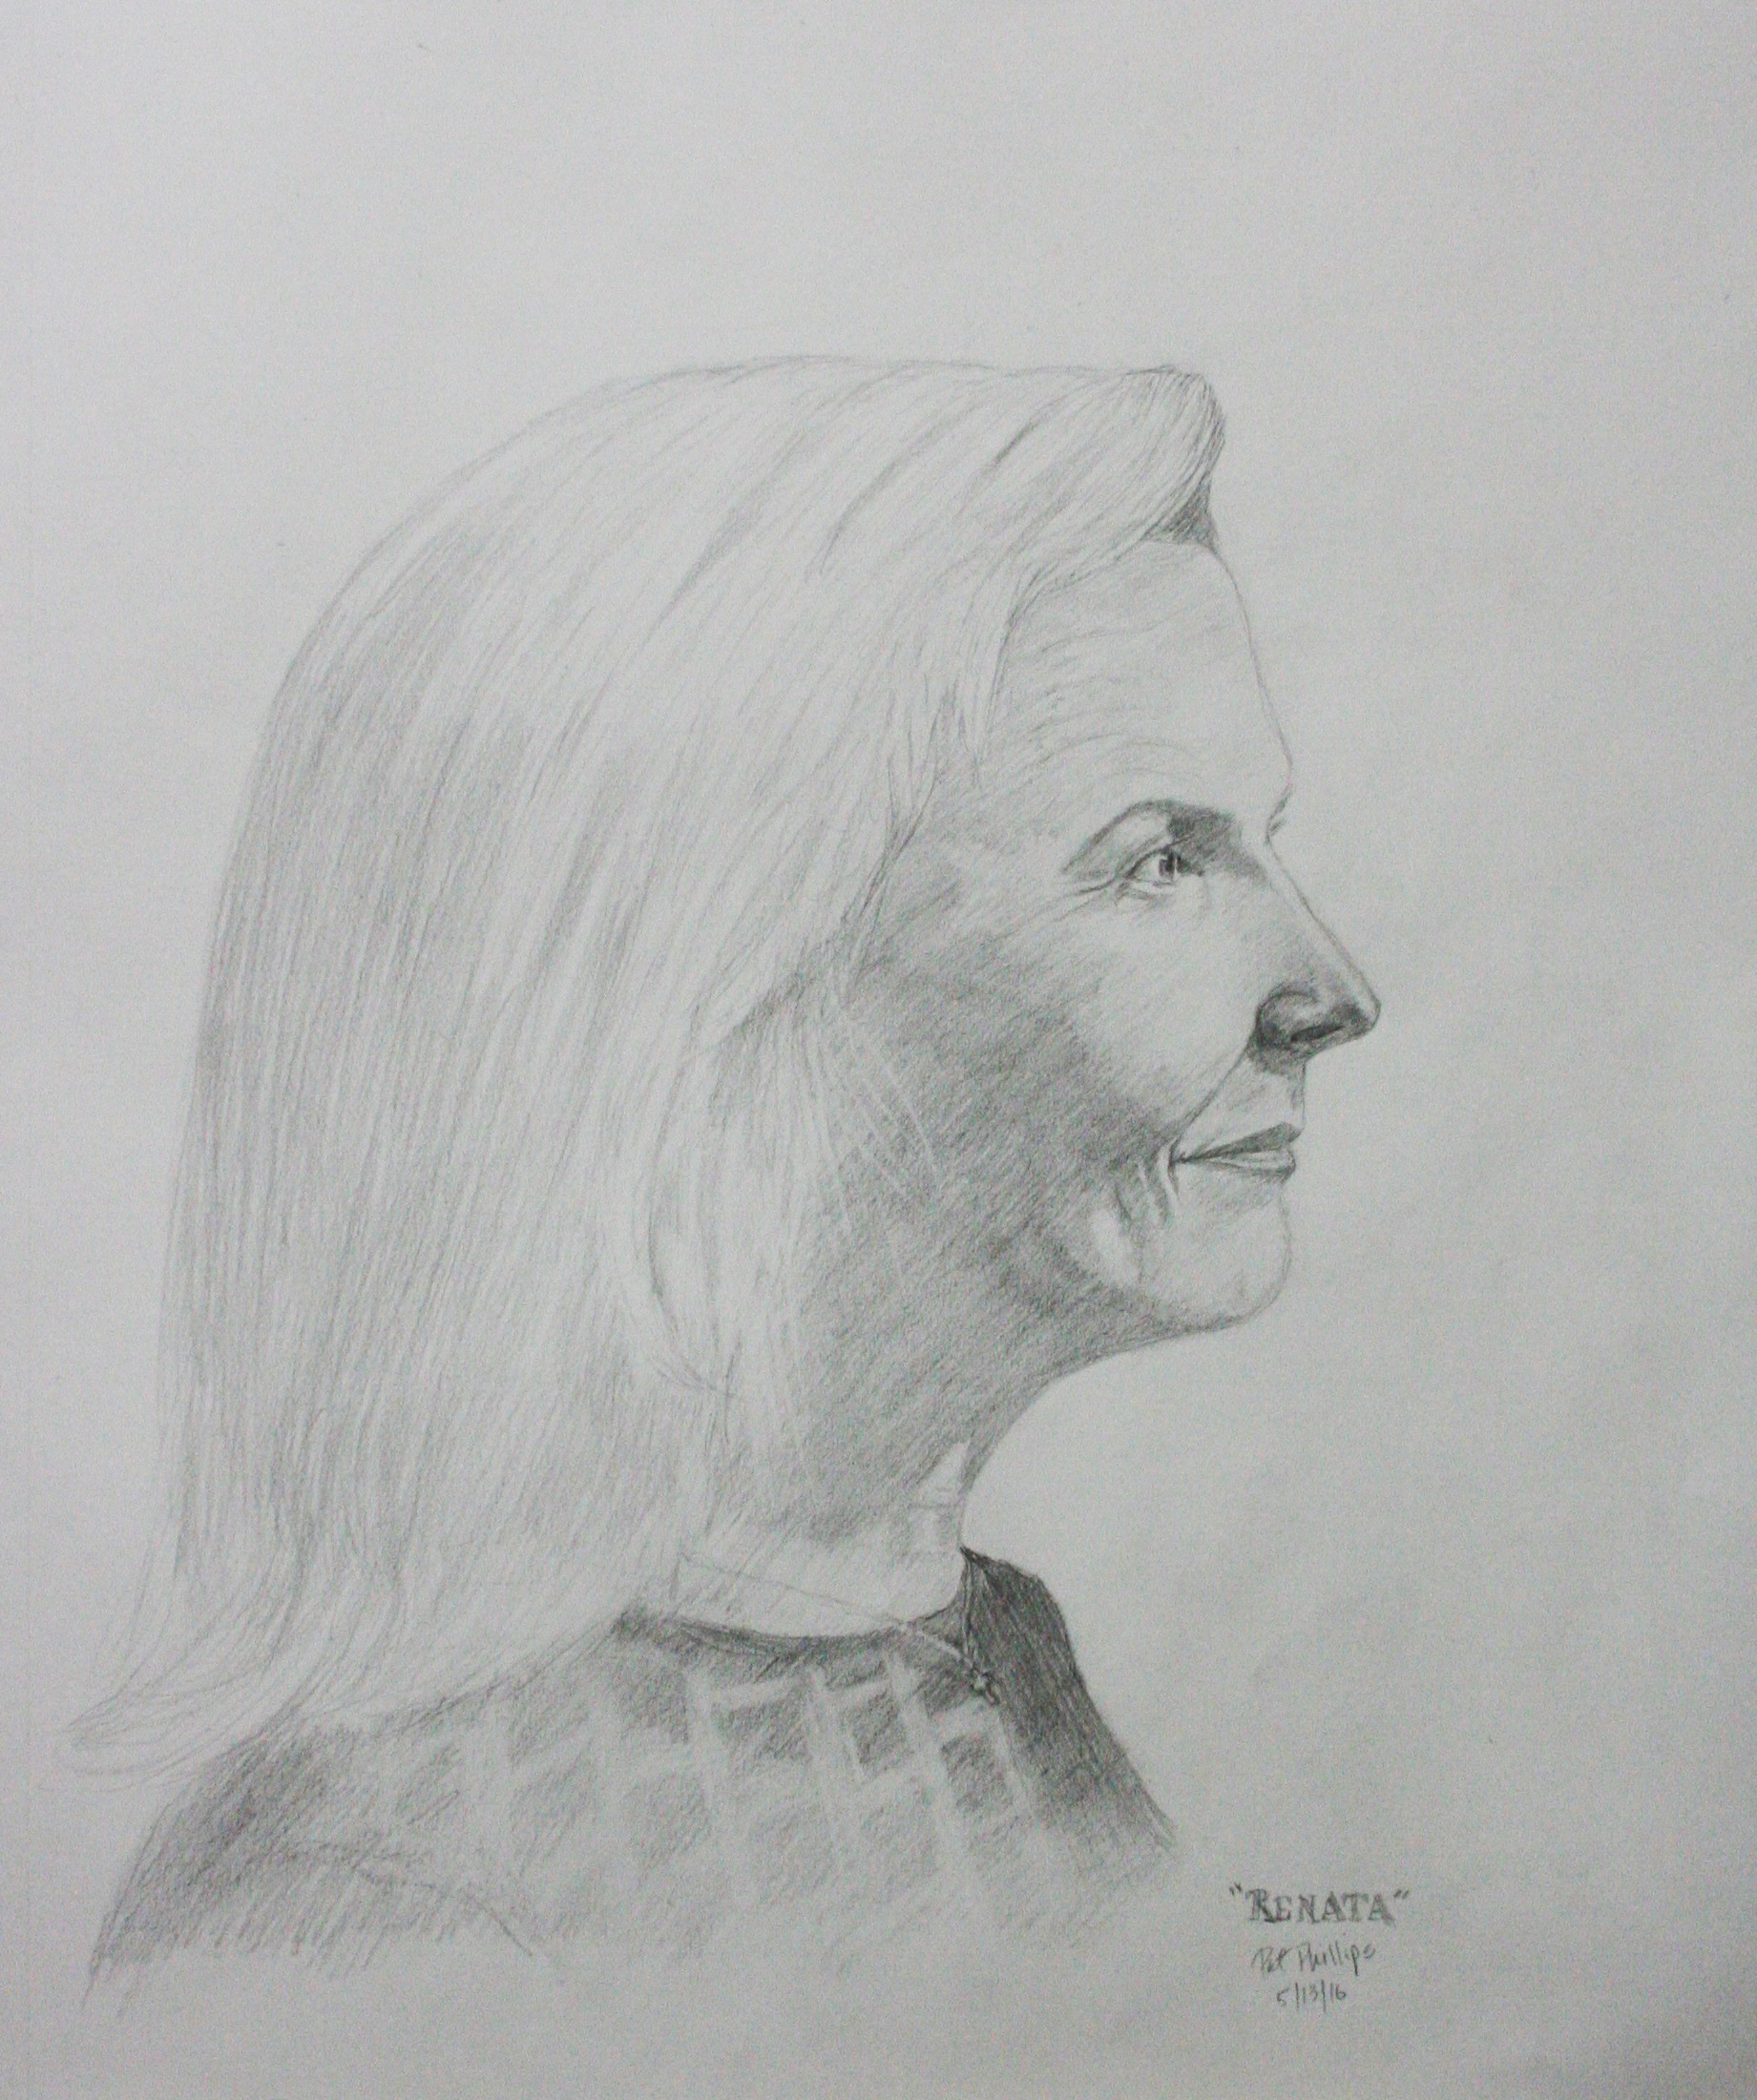 Pat Phillips did this 3-hour drawing.